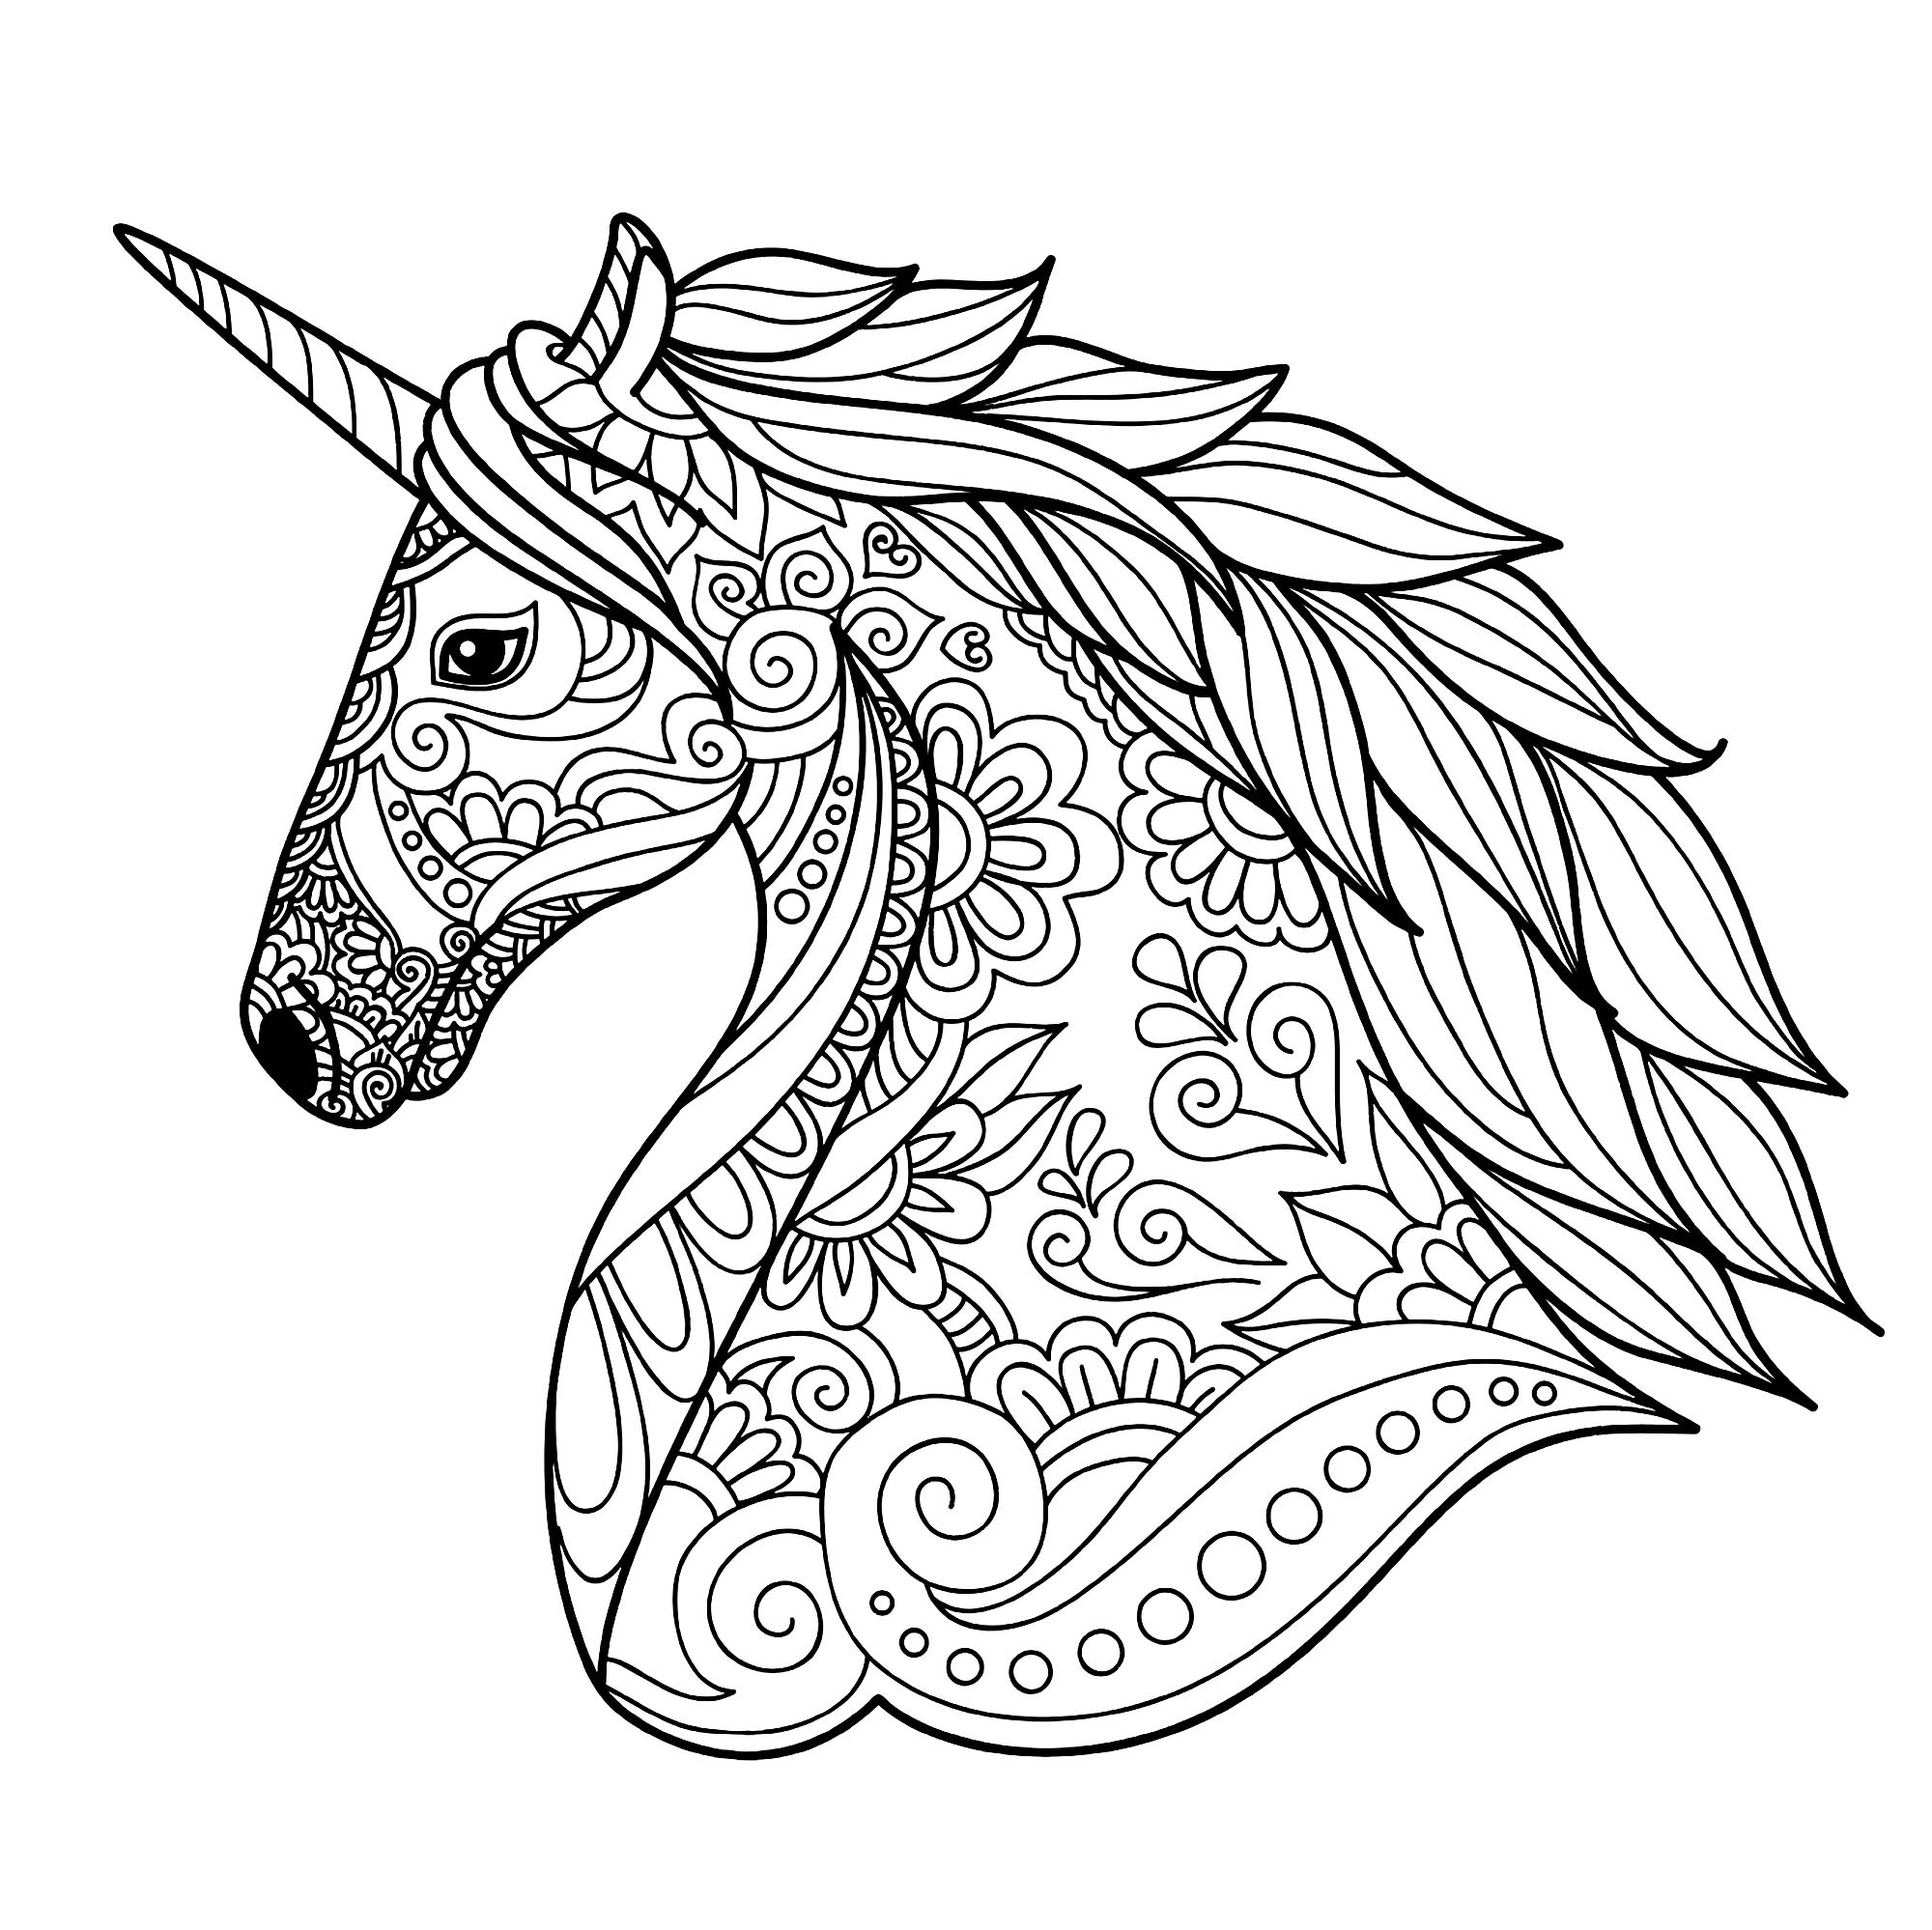 coloring worksheets unicorn unicorn coloring pages free download on clipartmag coloring unicorn worksheets